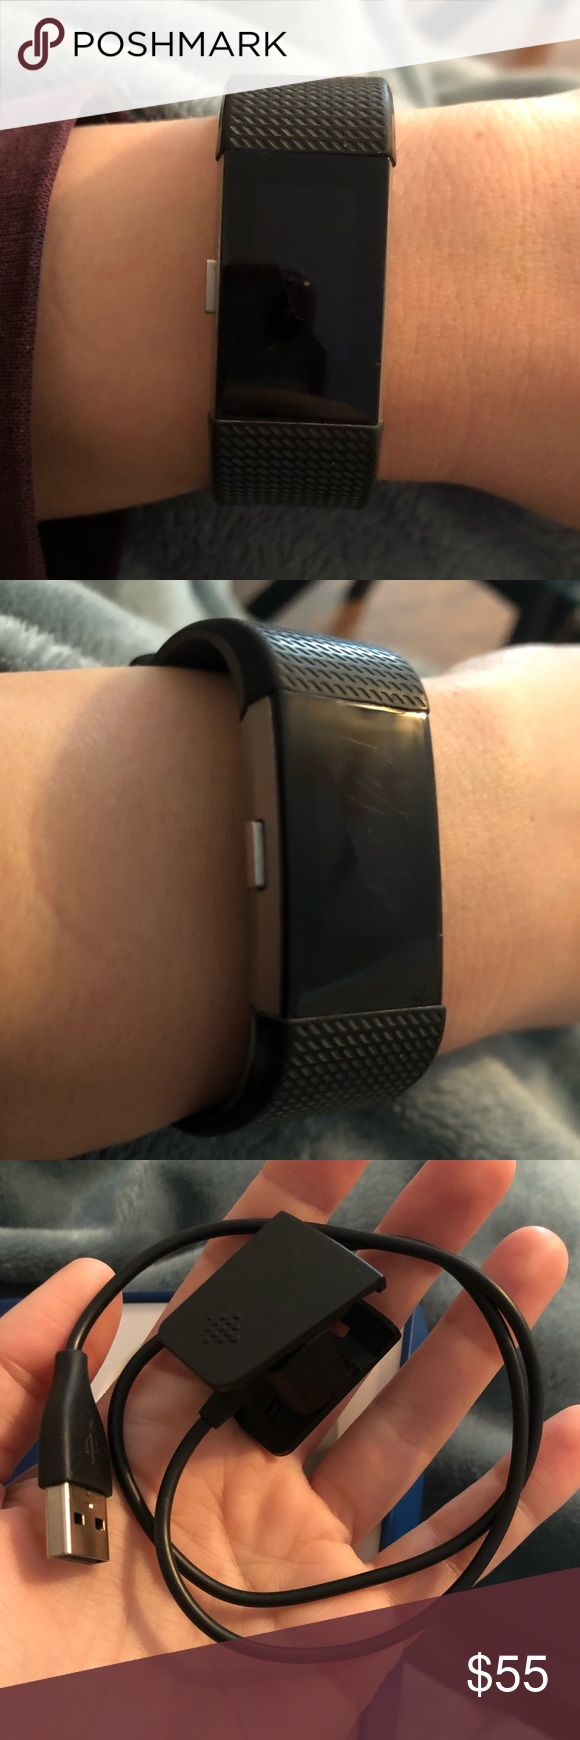 Fitbit Charge 2 Small Fitbit Charge 2. Some searches on the screen, but overall in good condition. Only worn for a couple months.  PurePulse® Heart Rate Multi-Sport Tracking and Connected GPS Call, Text, and Calendar Alerts Cardio Fitness Level Guided Breathing Sessions SmartTrack™ Auto Exercise Recognition Reminders to Move Auto Sleep Tracking Fitbit Accessories Watches